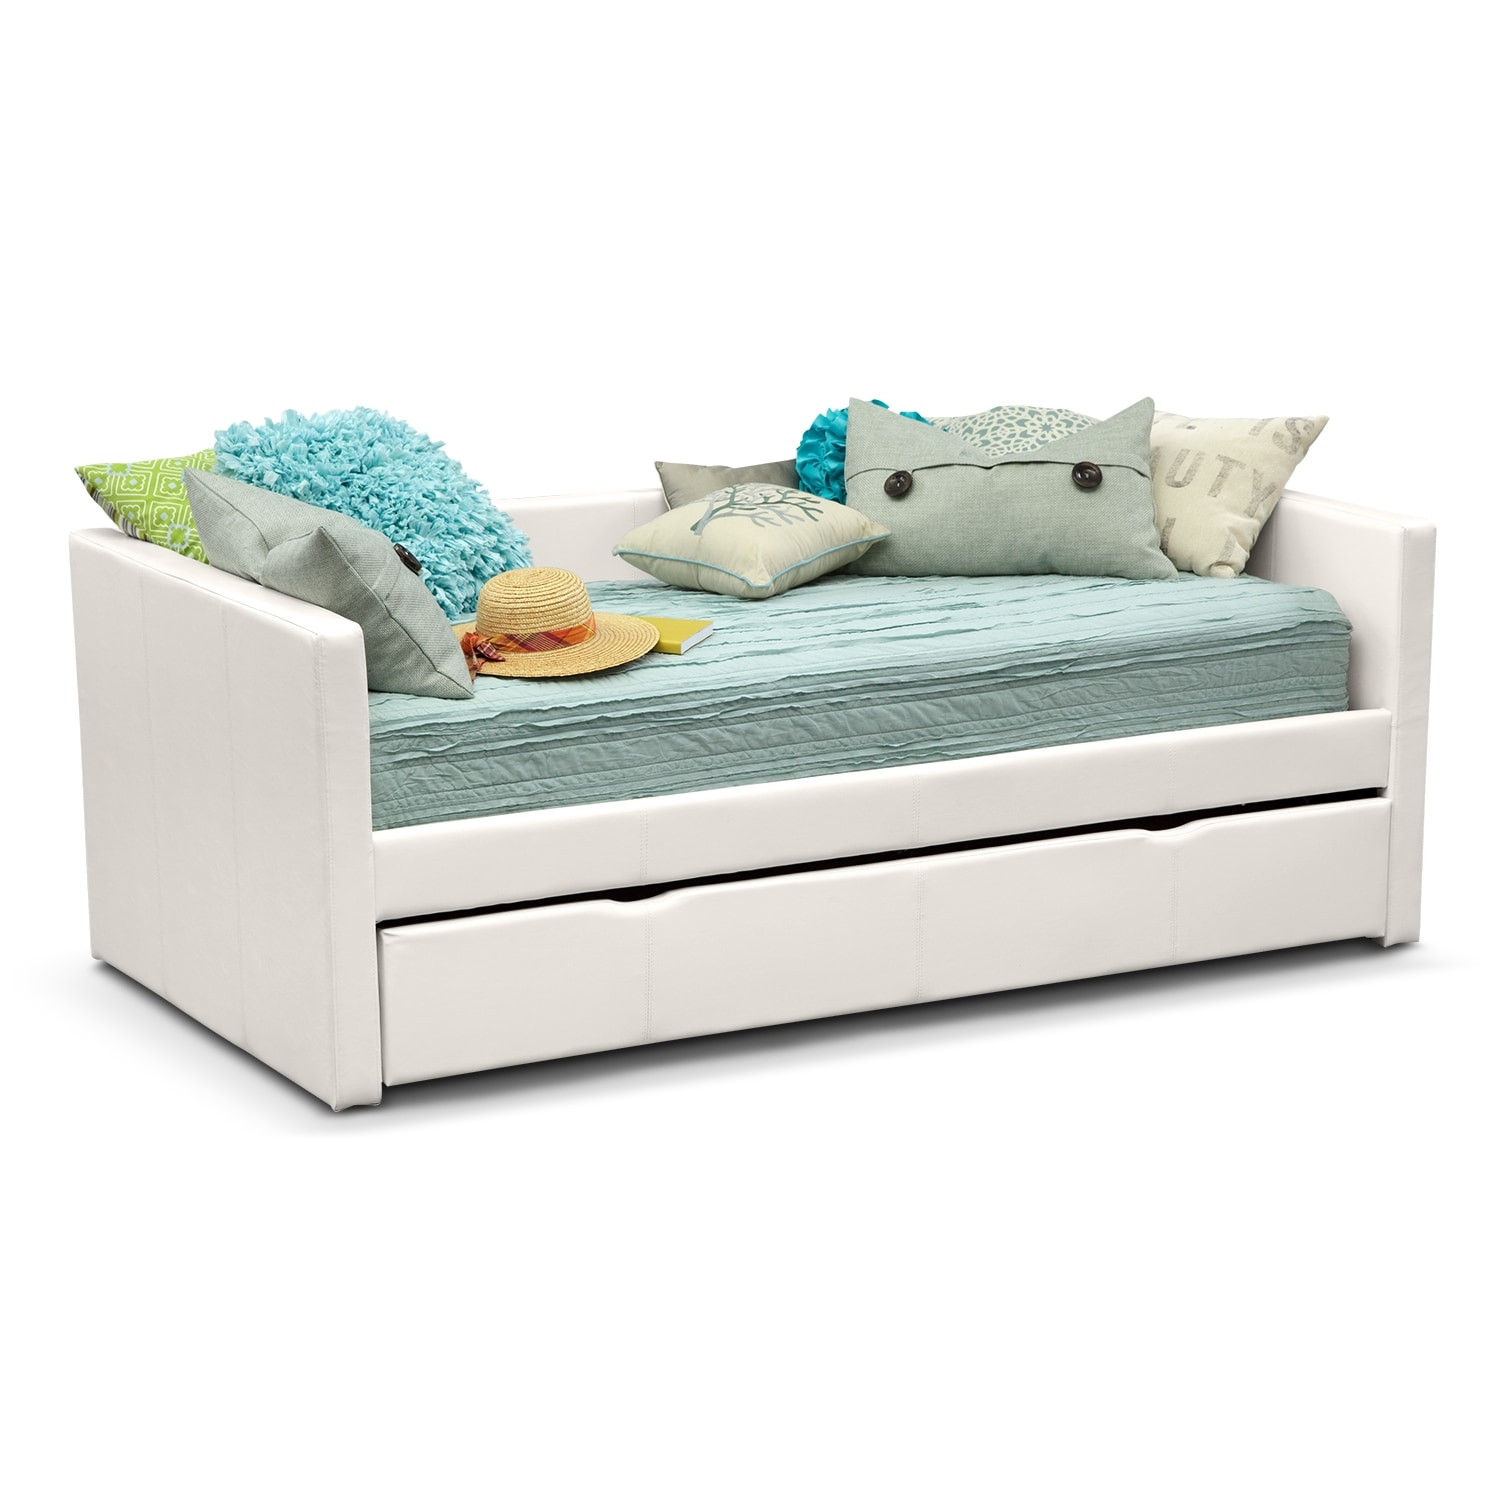 Carey white twin daybed with trundle american signature furniture